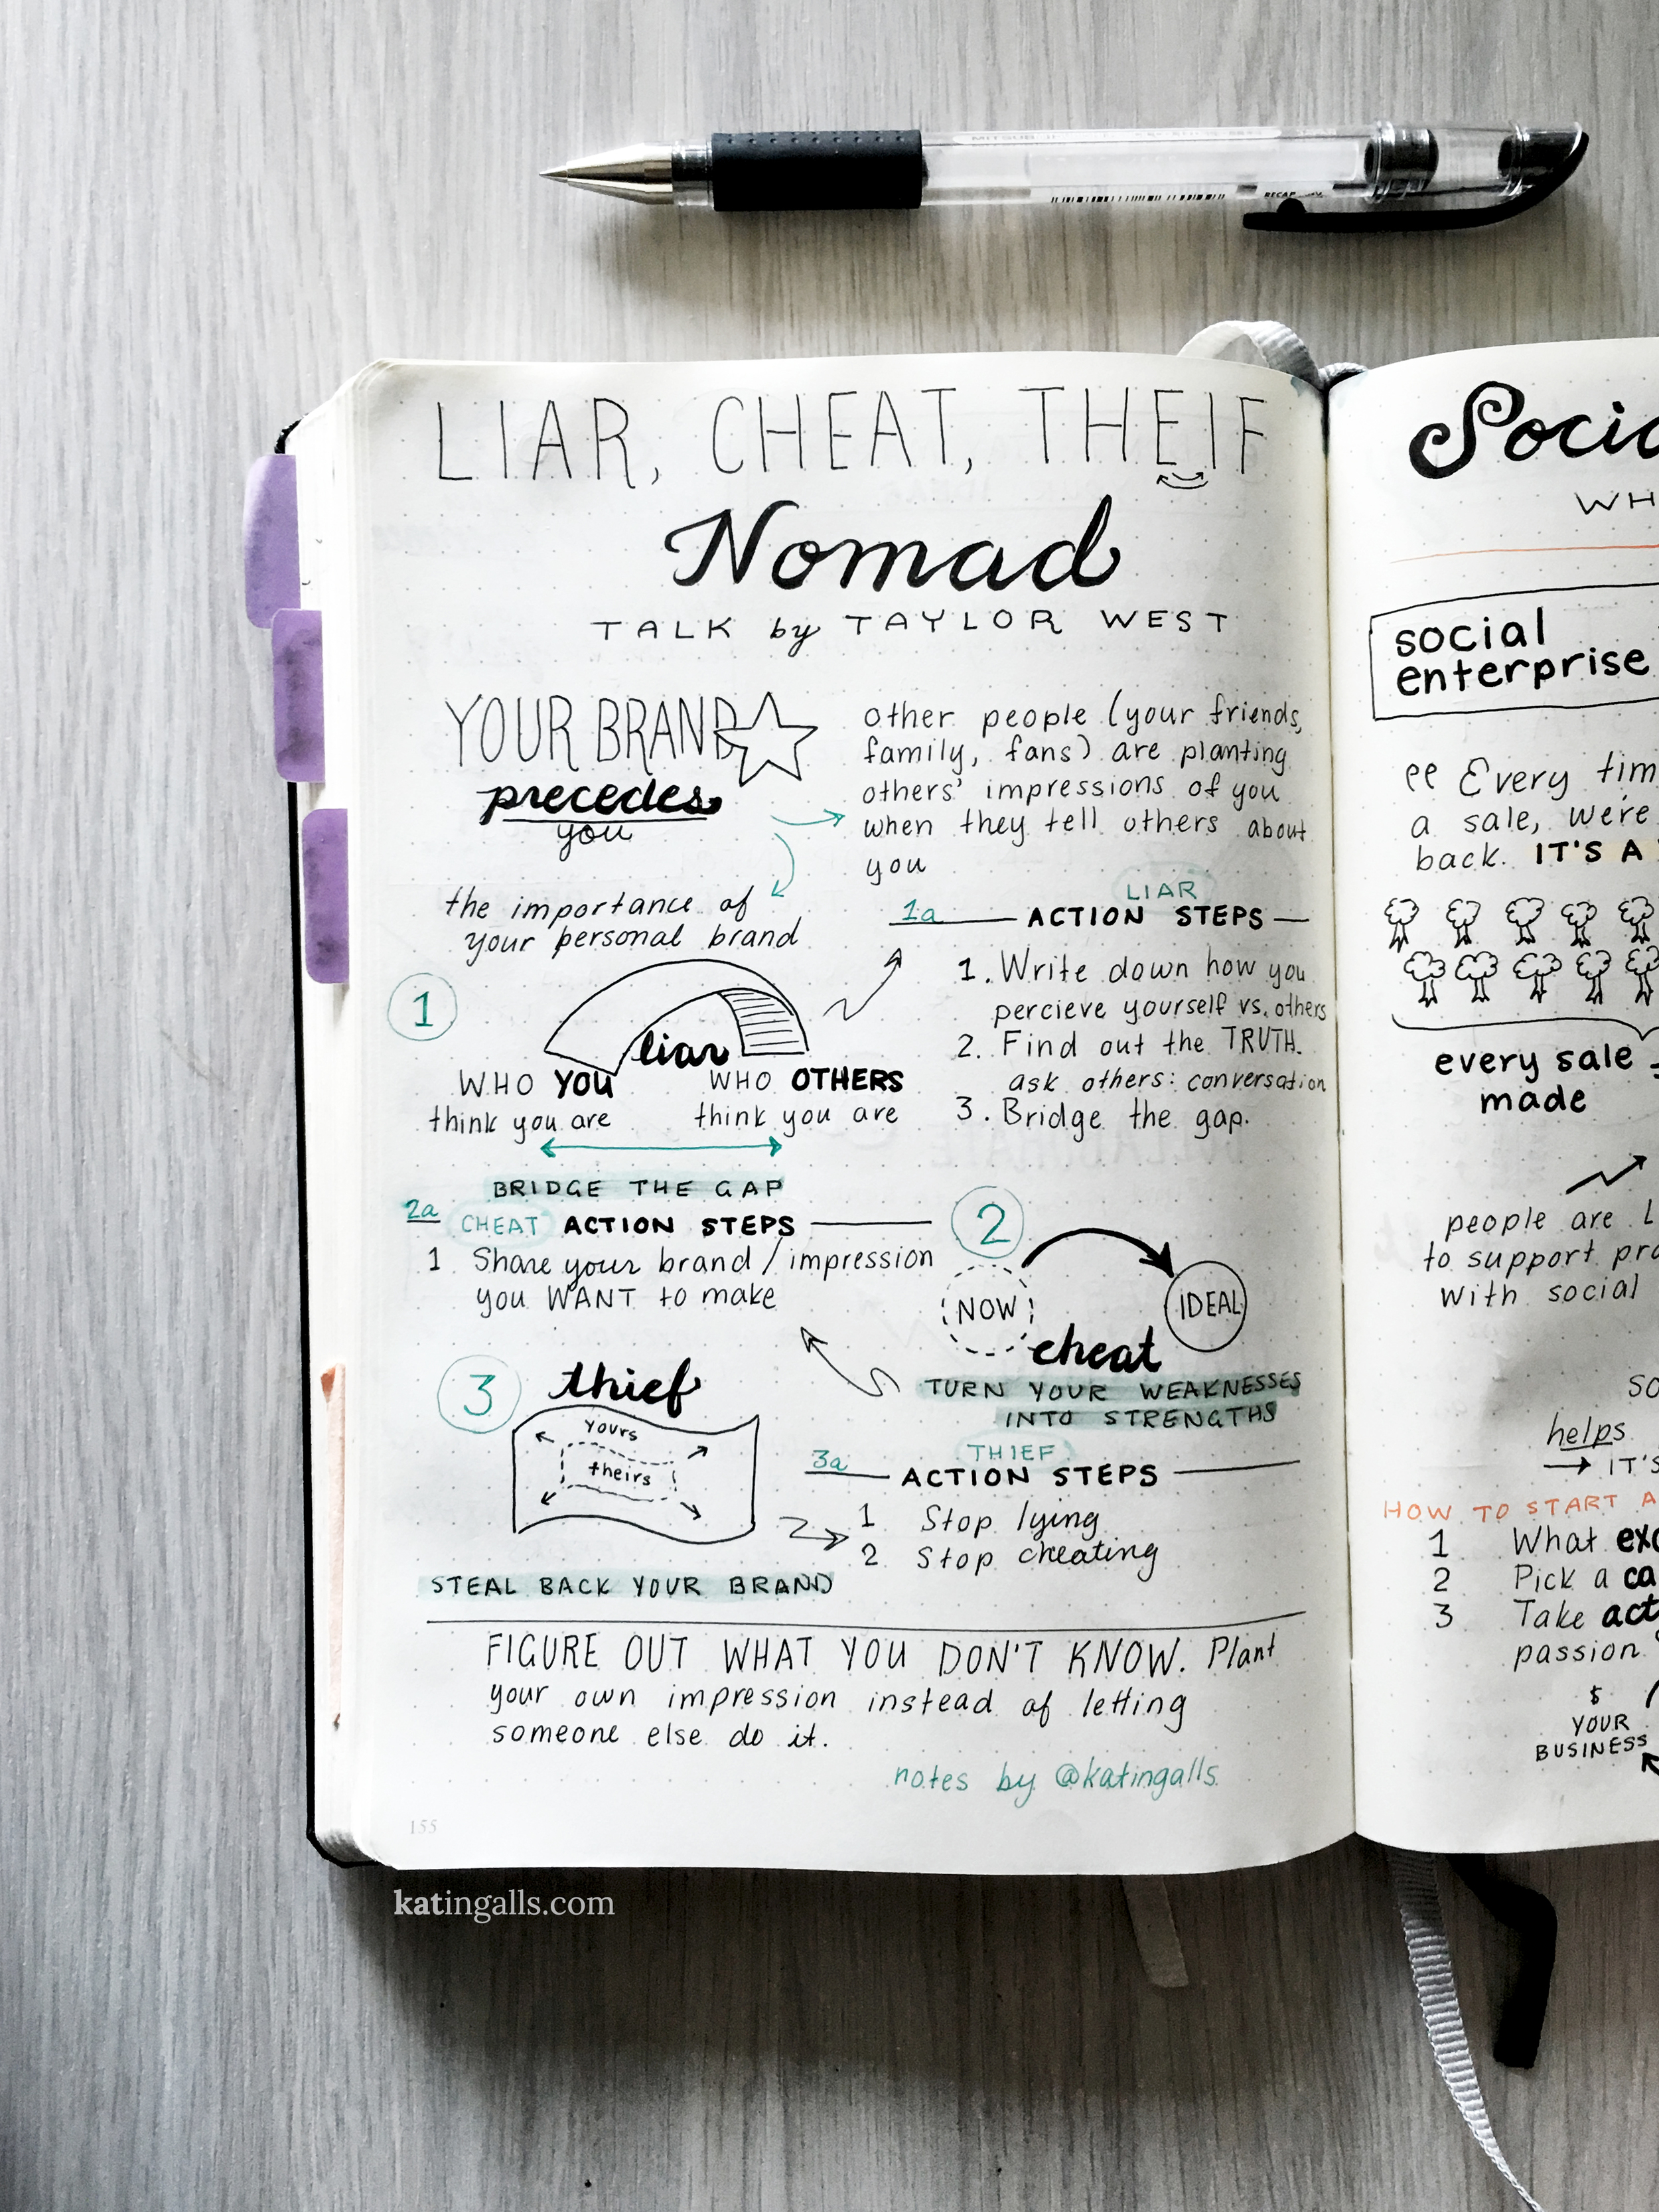 Liar, Cheat, Thief, Nomad -by Taylor West